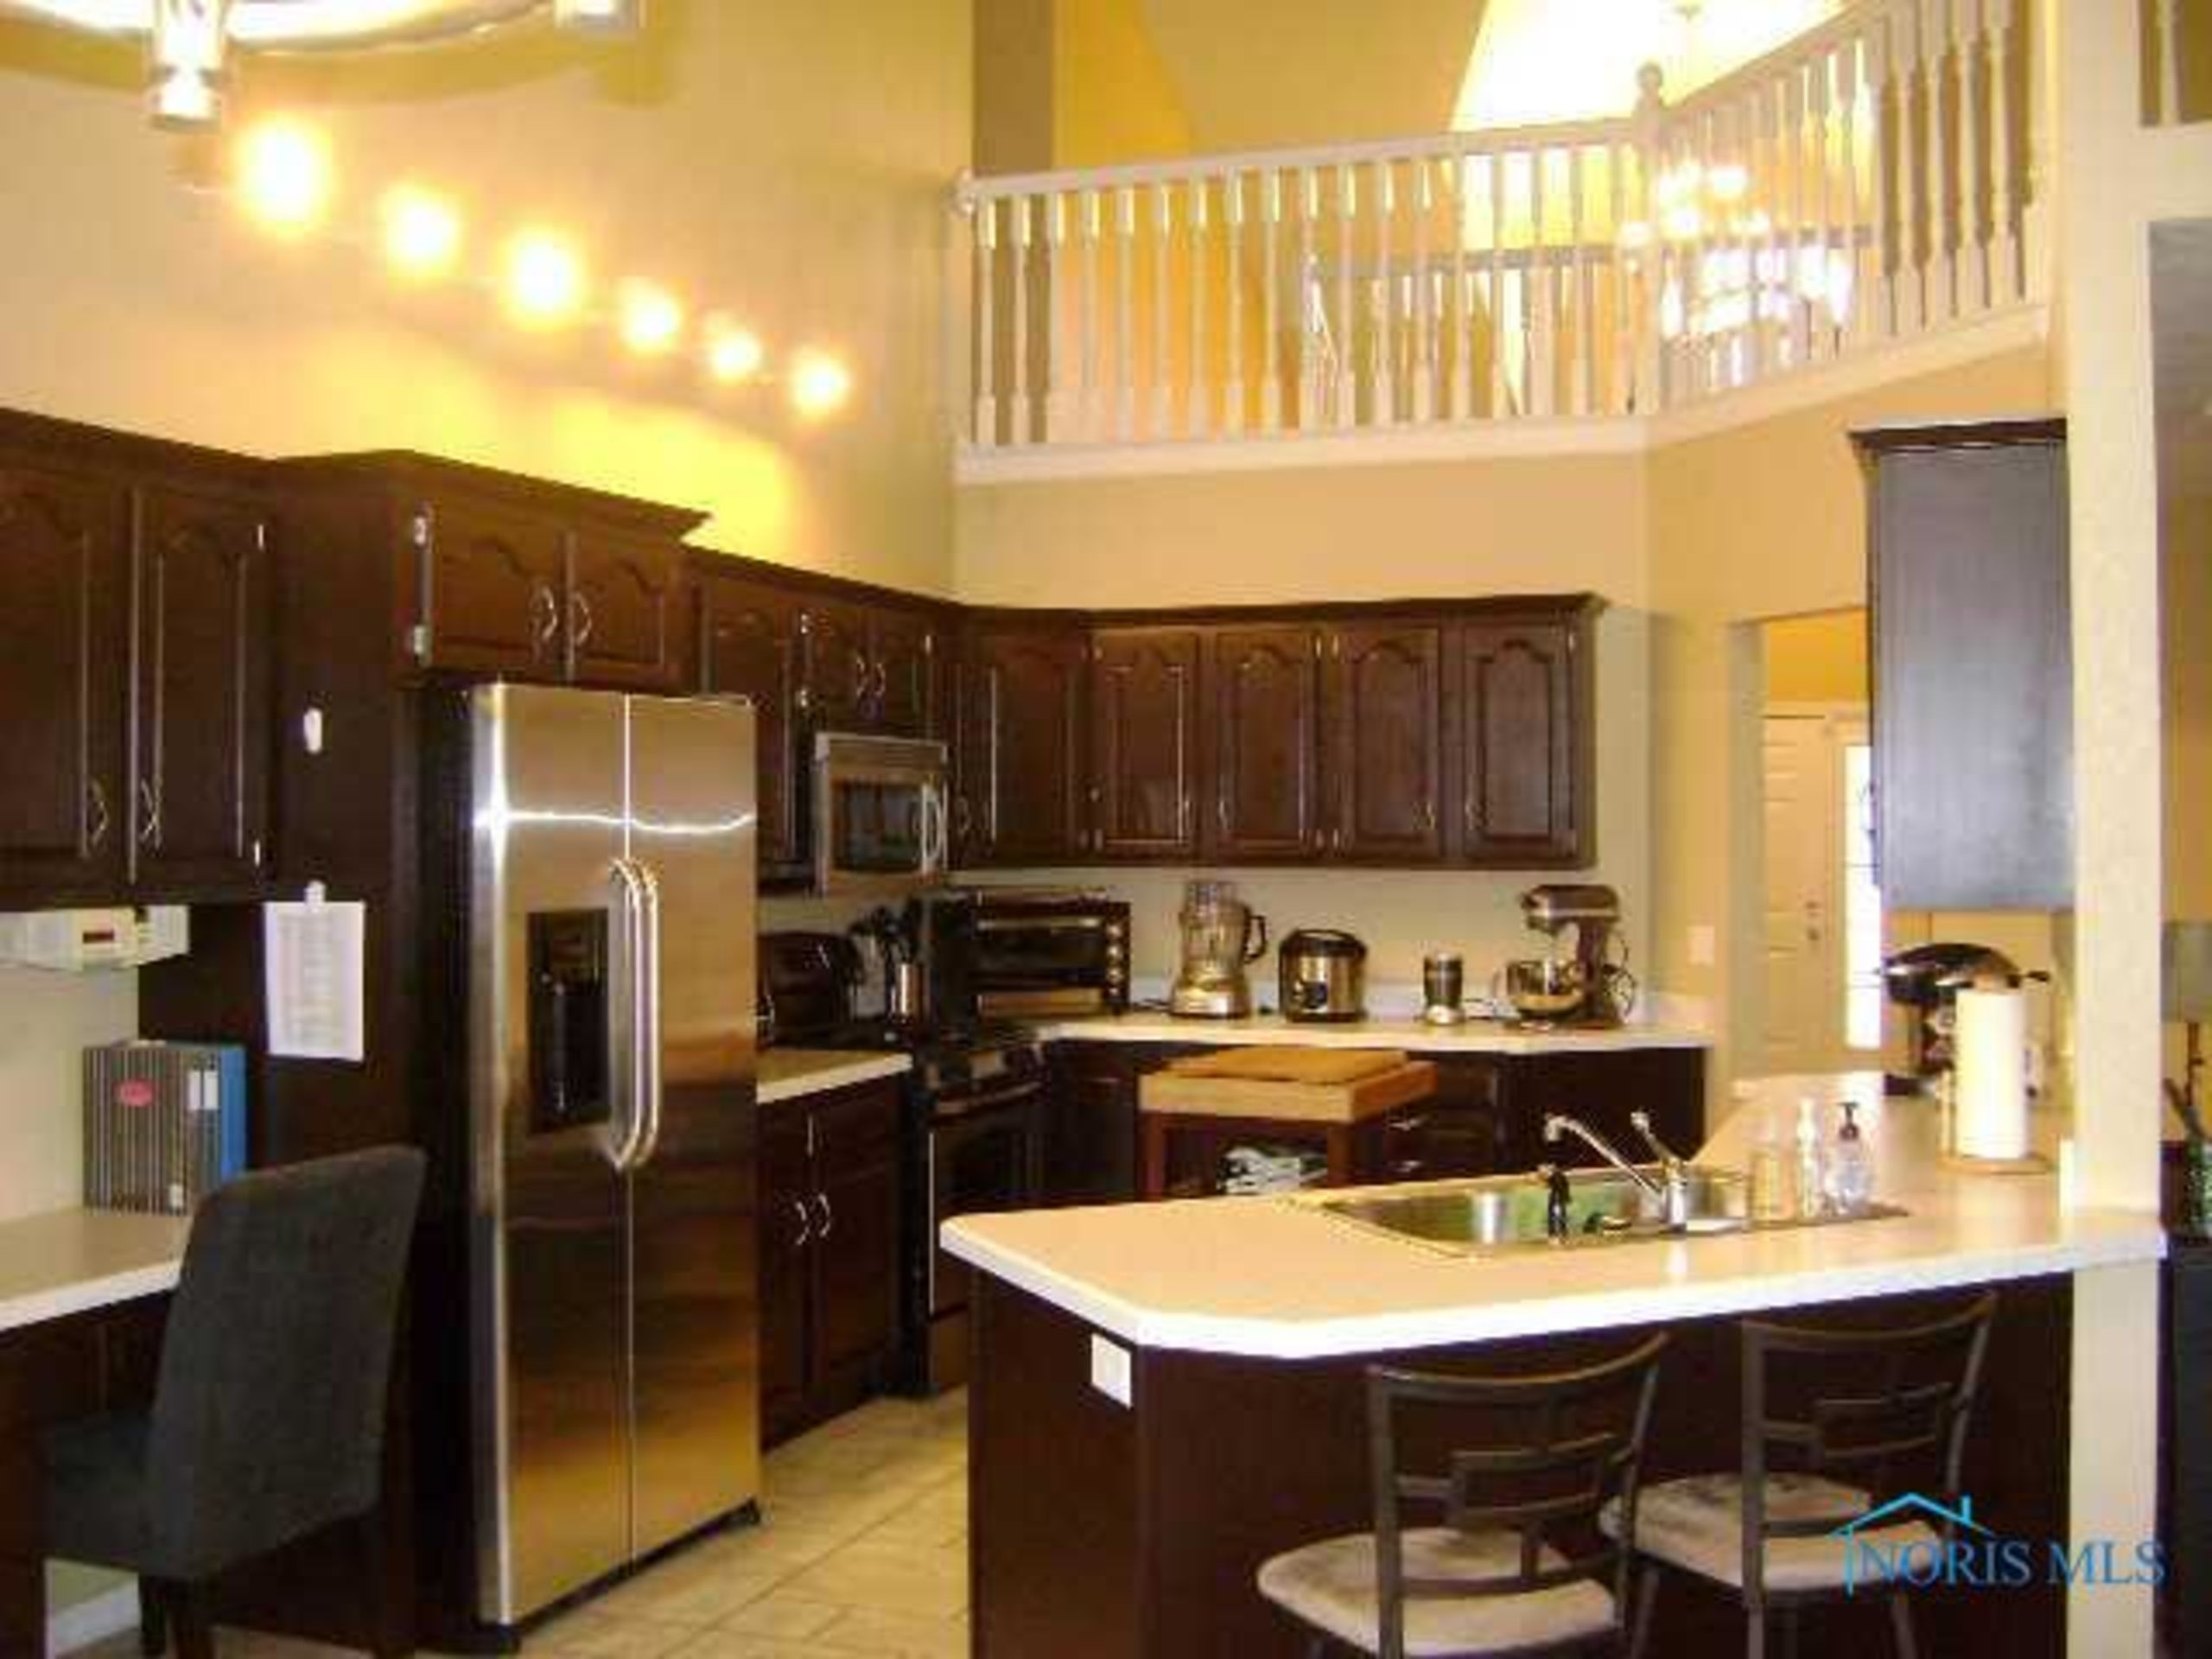 Incredible Open Kitchen with Appliances Included